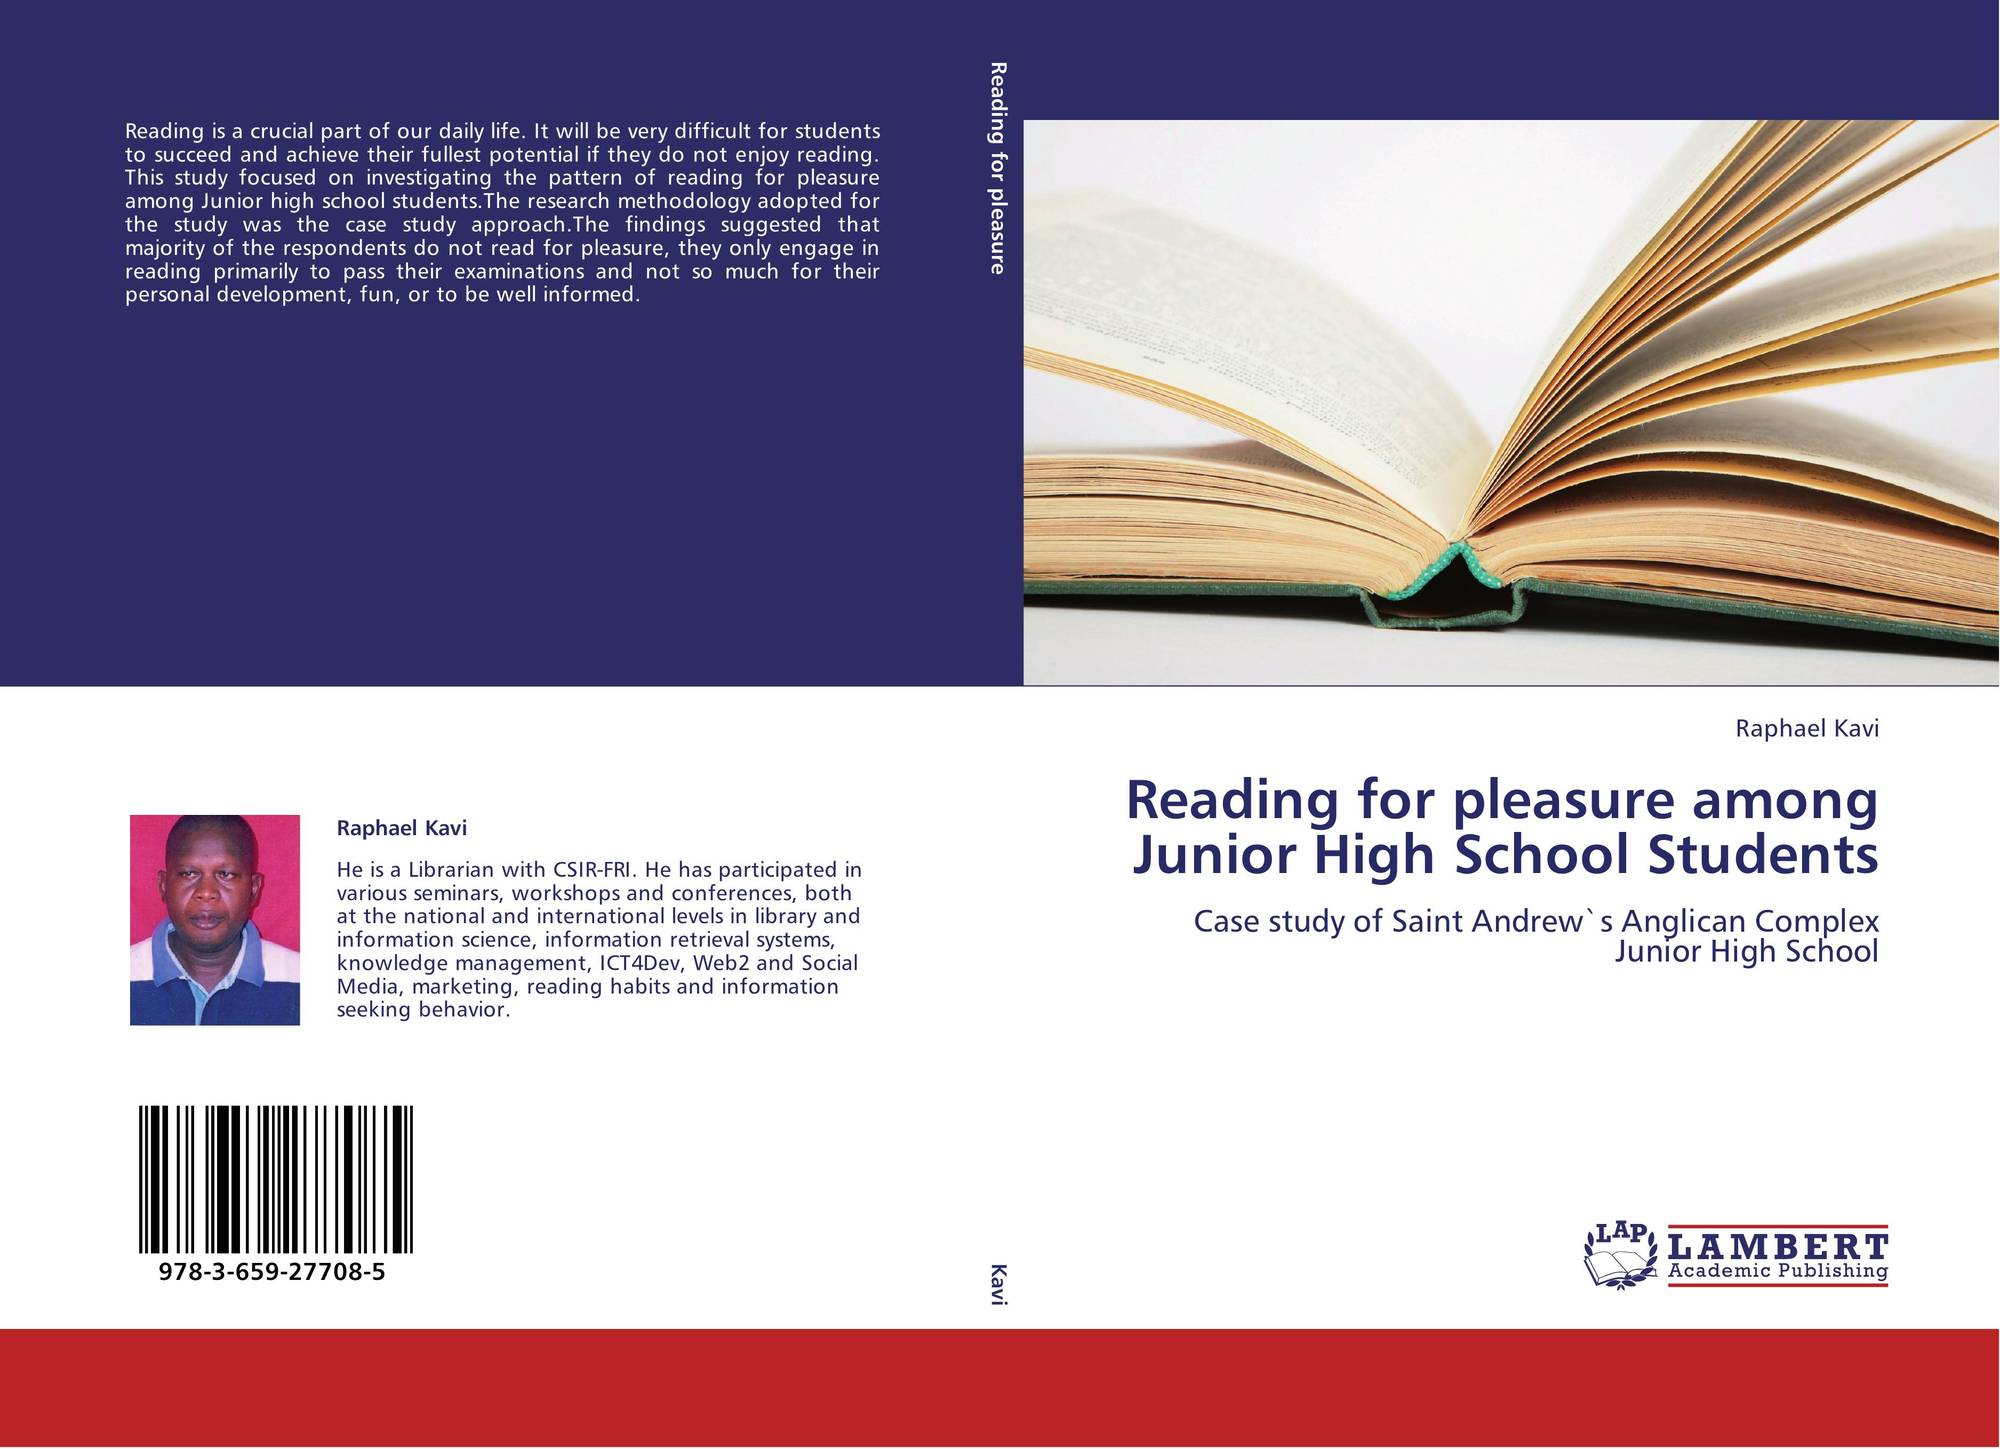 Reading for pleasure among Junior High School Students, 978